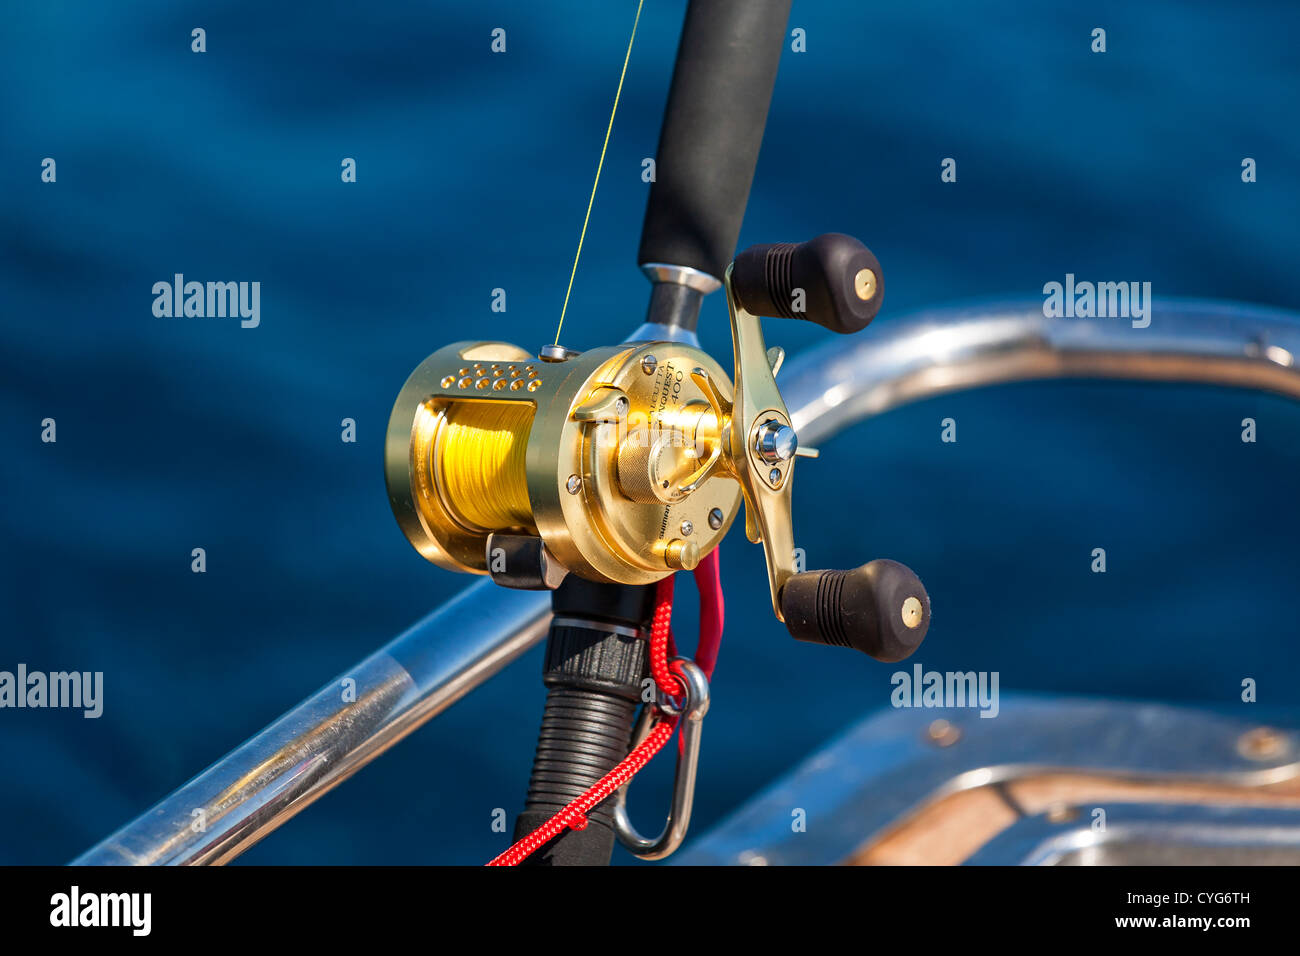 Shimano Conquest trolling reel with safety lanyard attached. - Stock Image